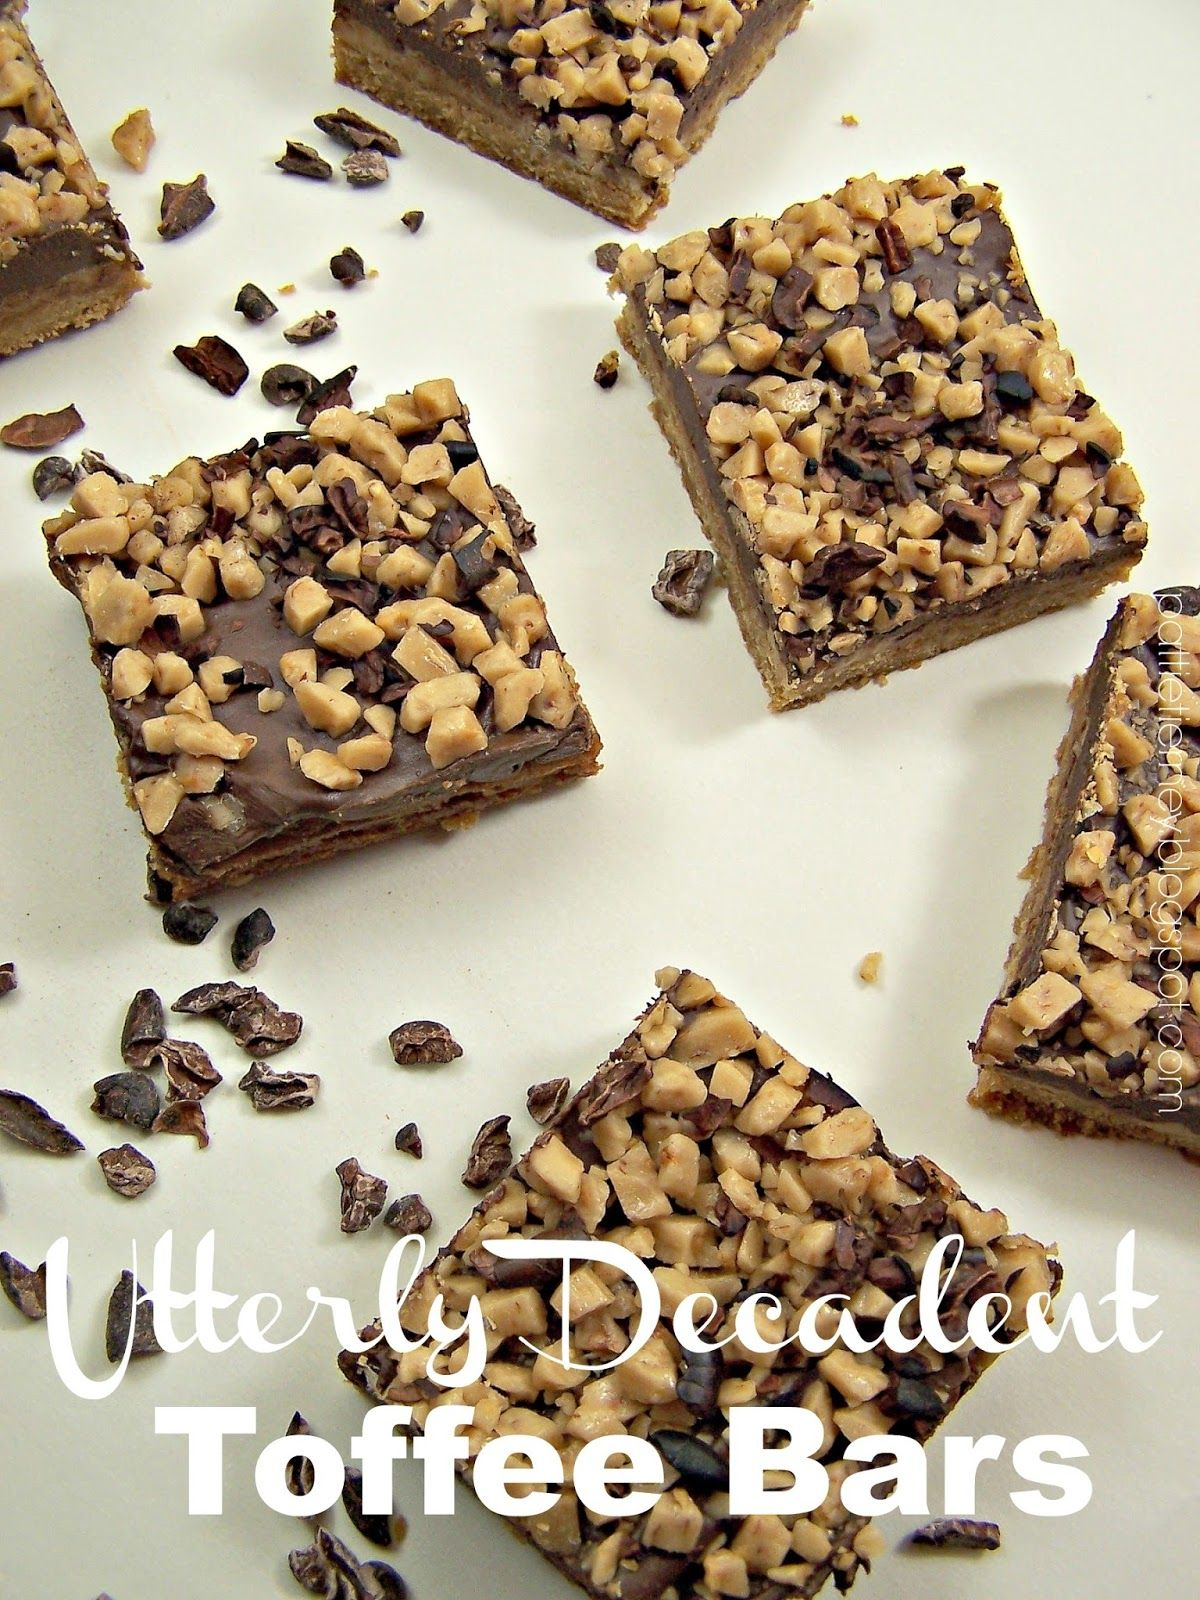 406f385b9d6fb1d71254a84c1e34692f - Toffee Bars Recipe Better Homes And Gardens